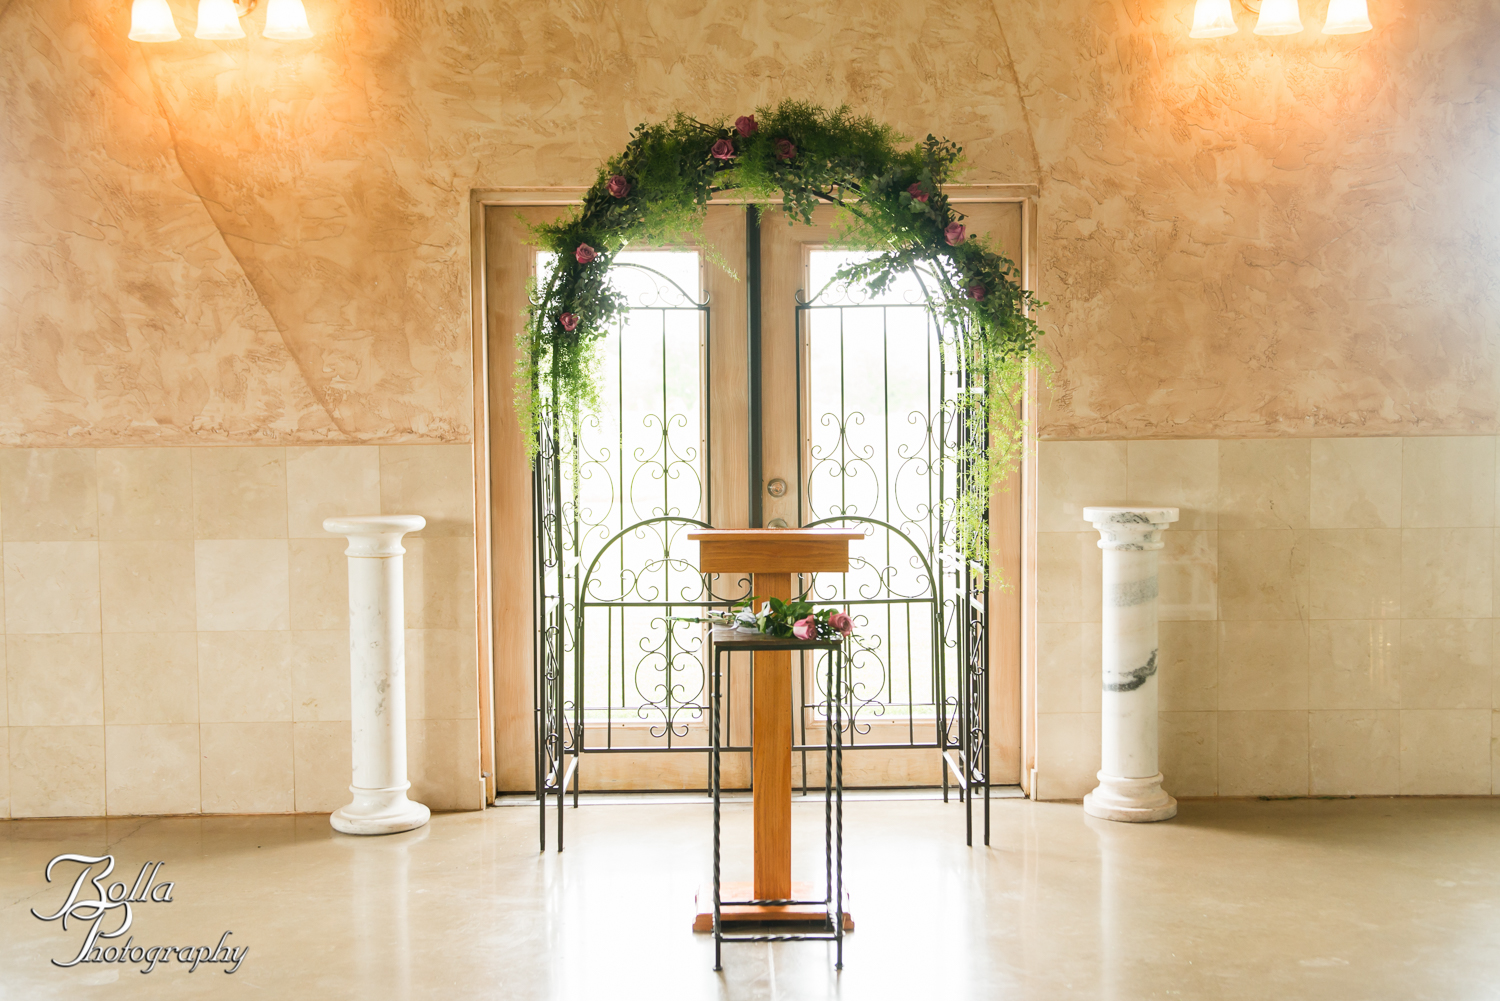 Bolla_Photography_St_Louis_wedding_photographer_Villa_Marie_Winery-0146.jpg